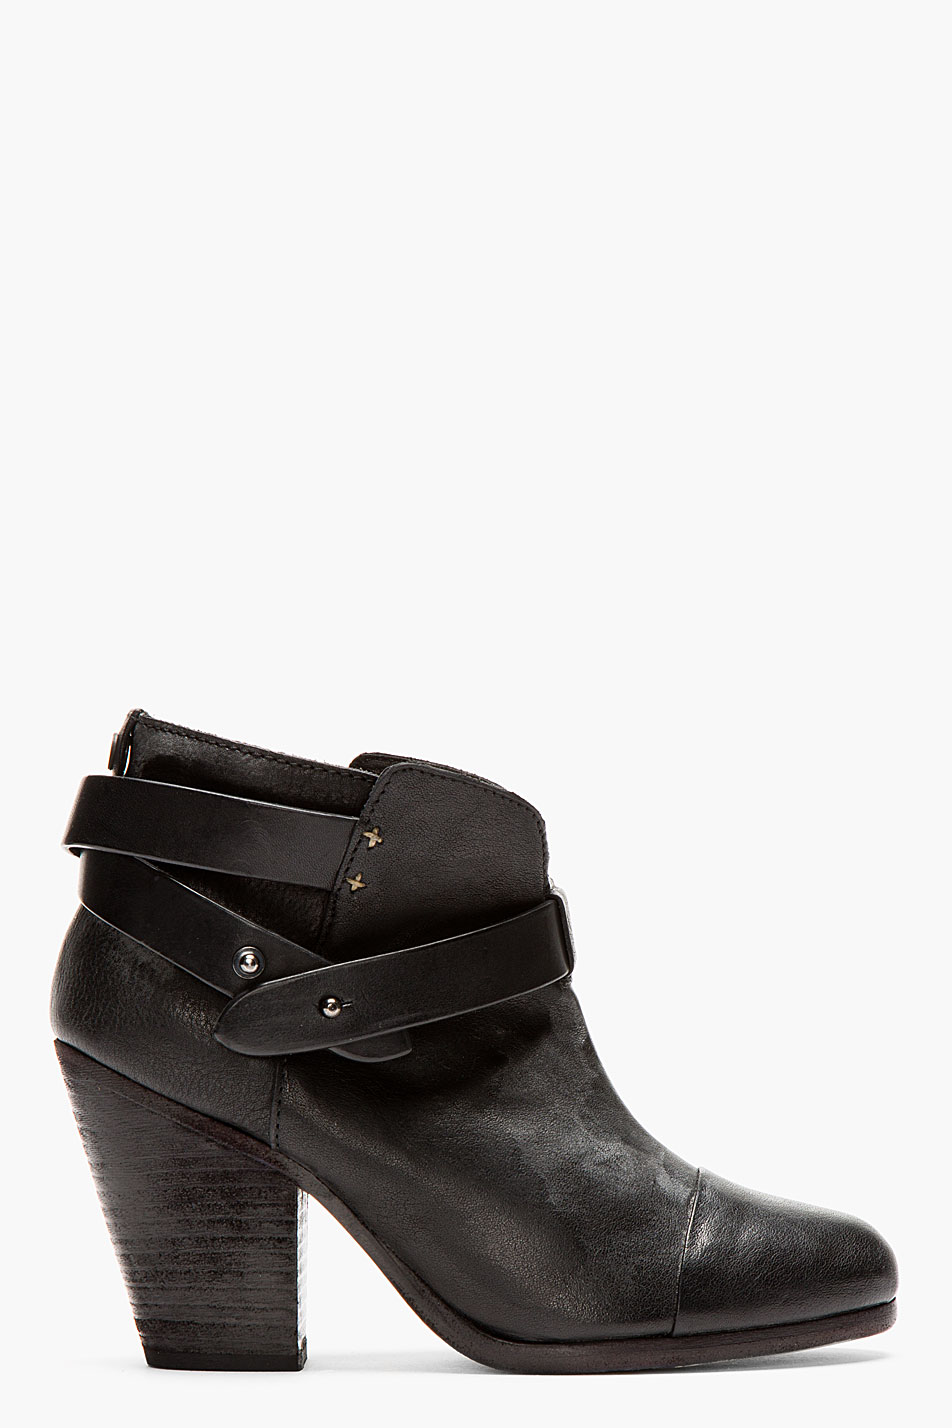 rag and bone black wraparound strap harrow boots